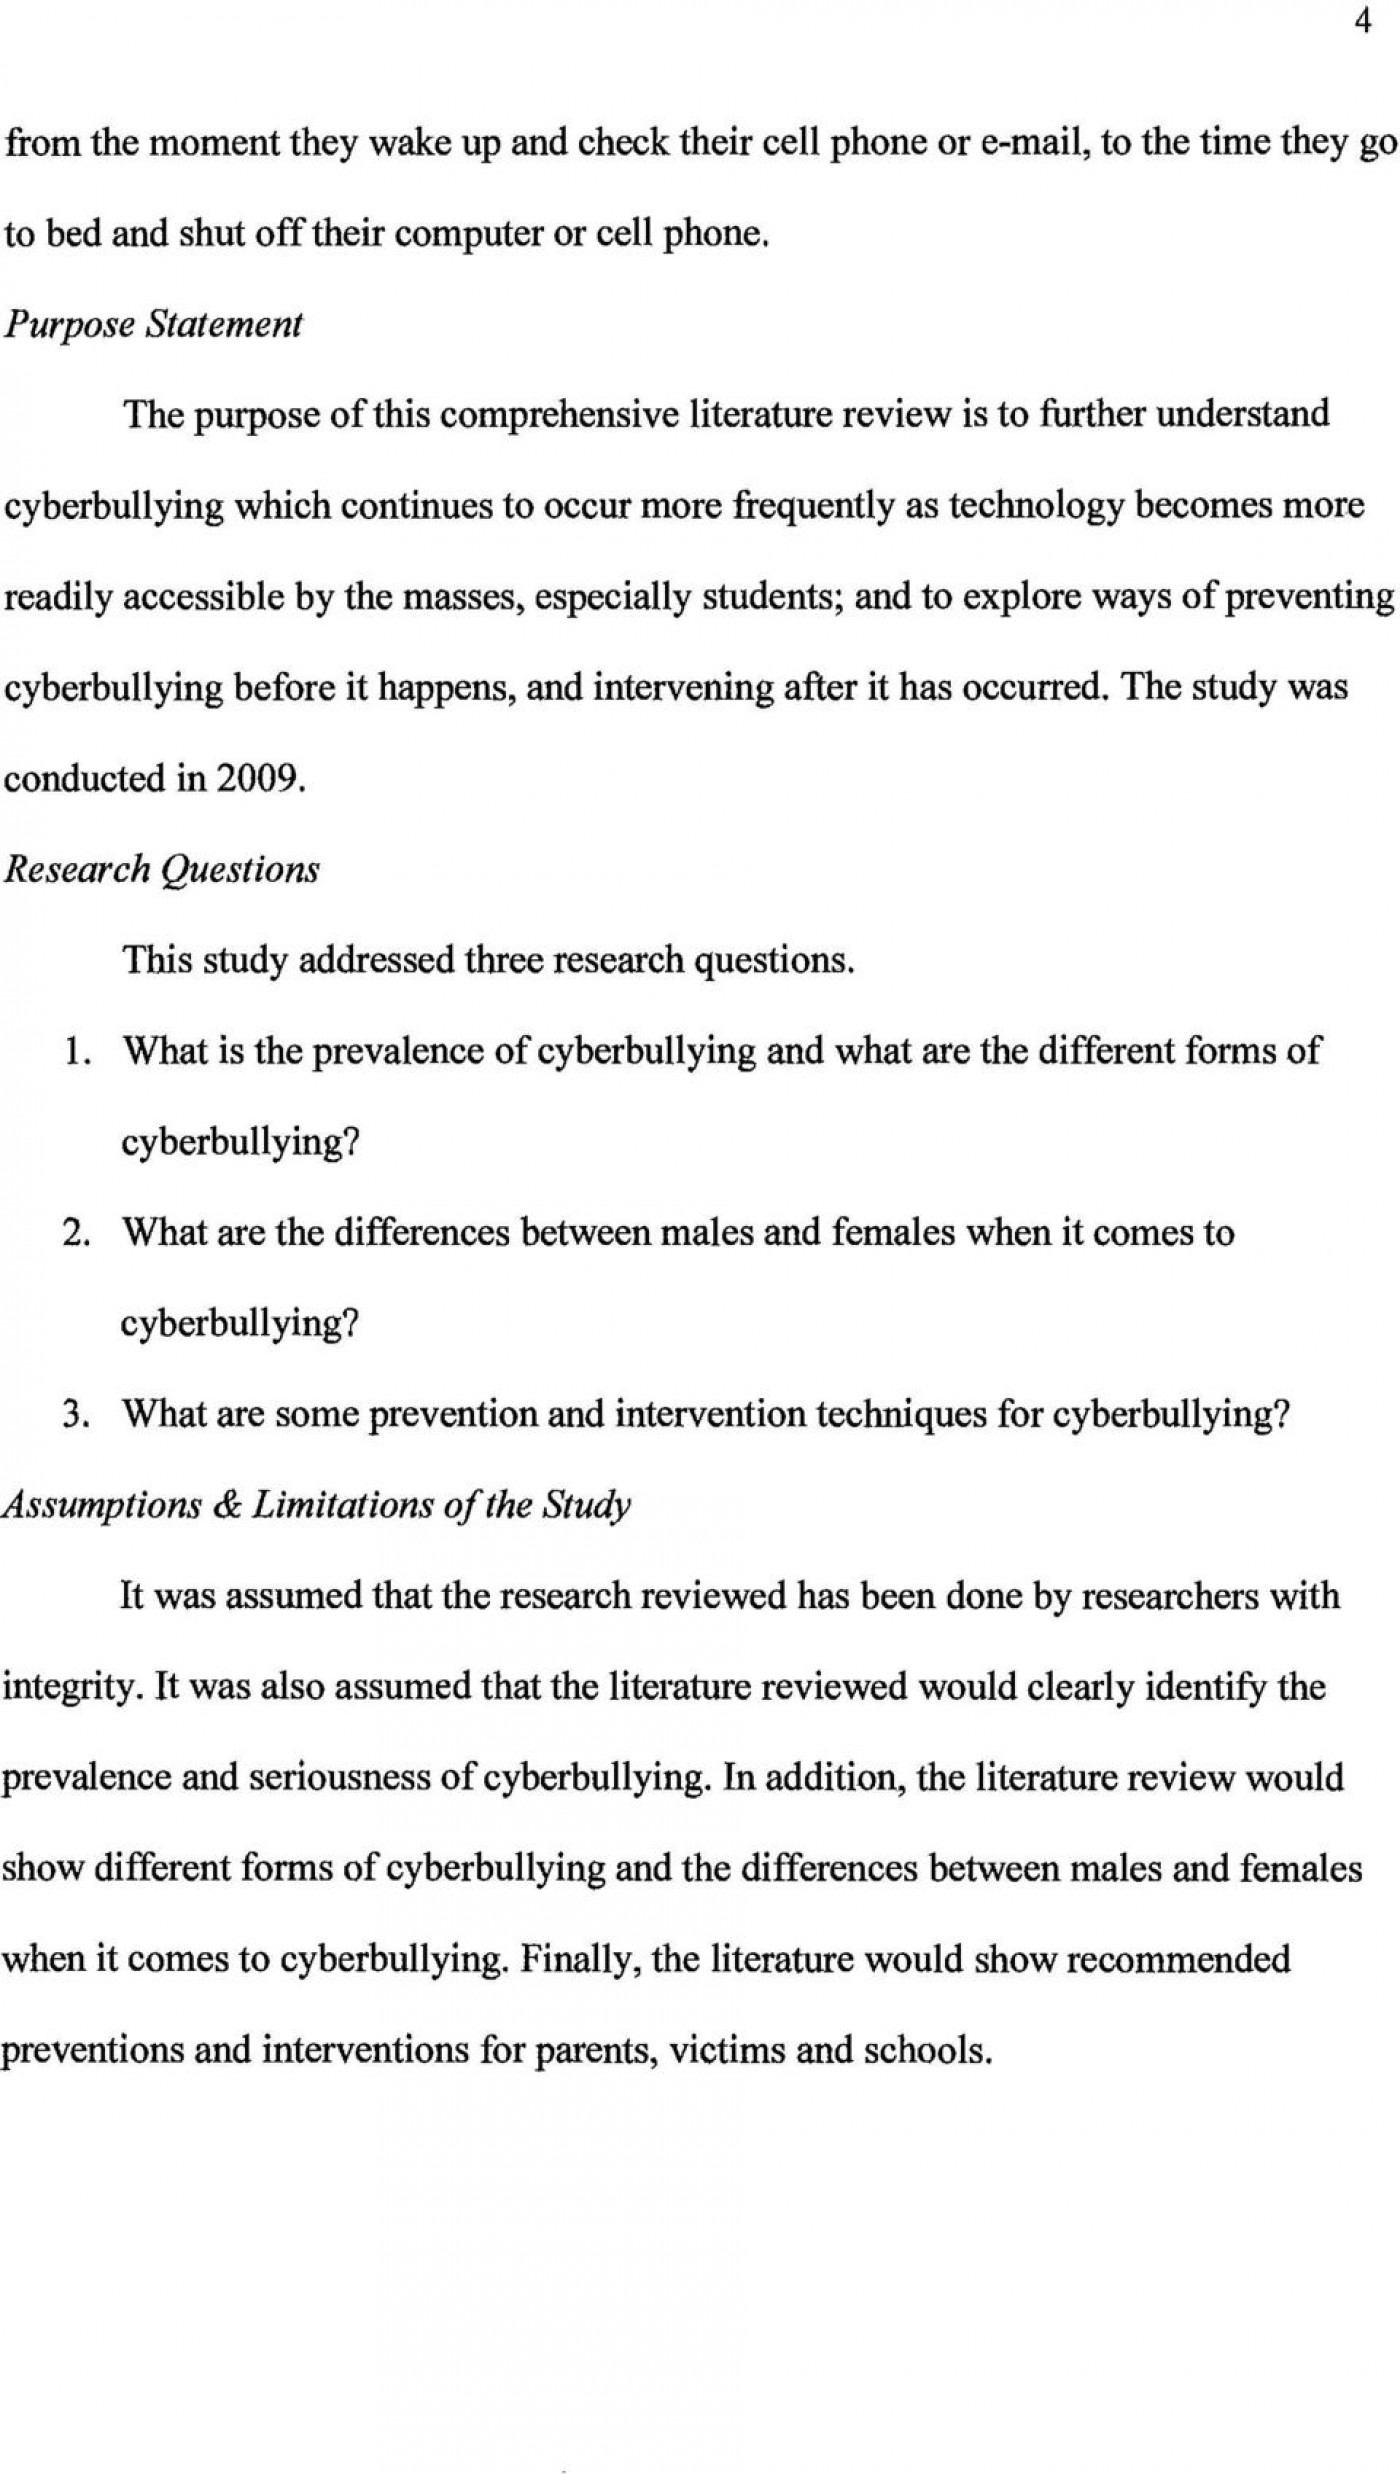 004 Cyberbullying Research Questions Paper Page 8 Awful Topics Topic 1400